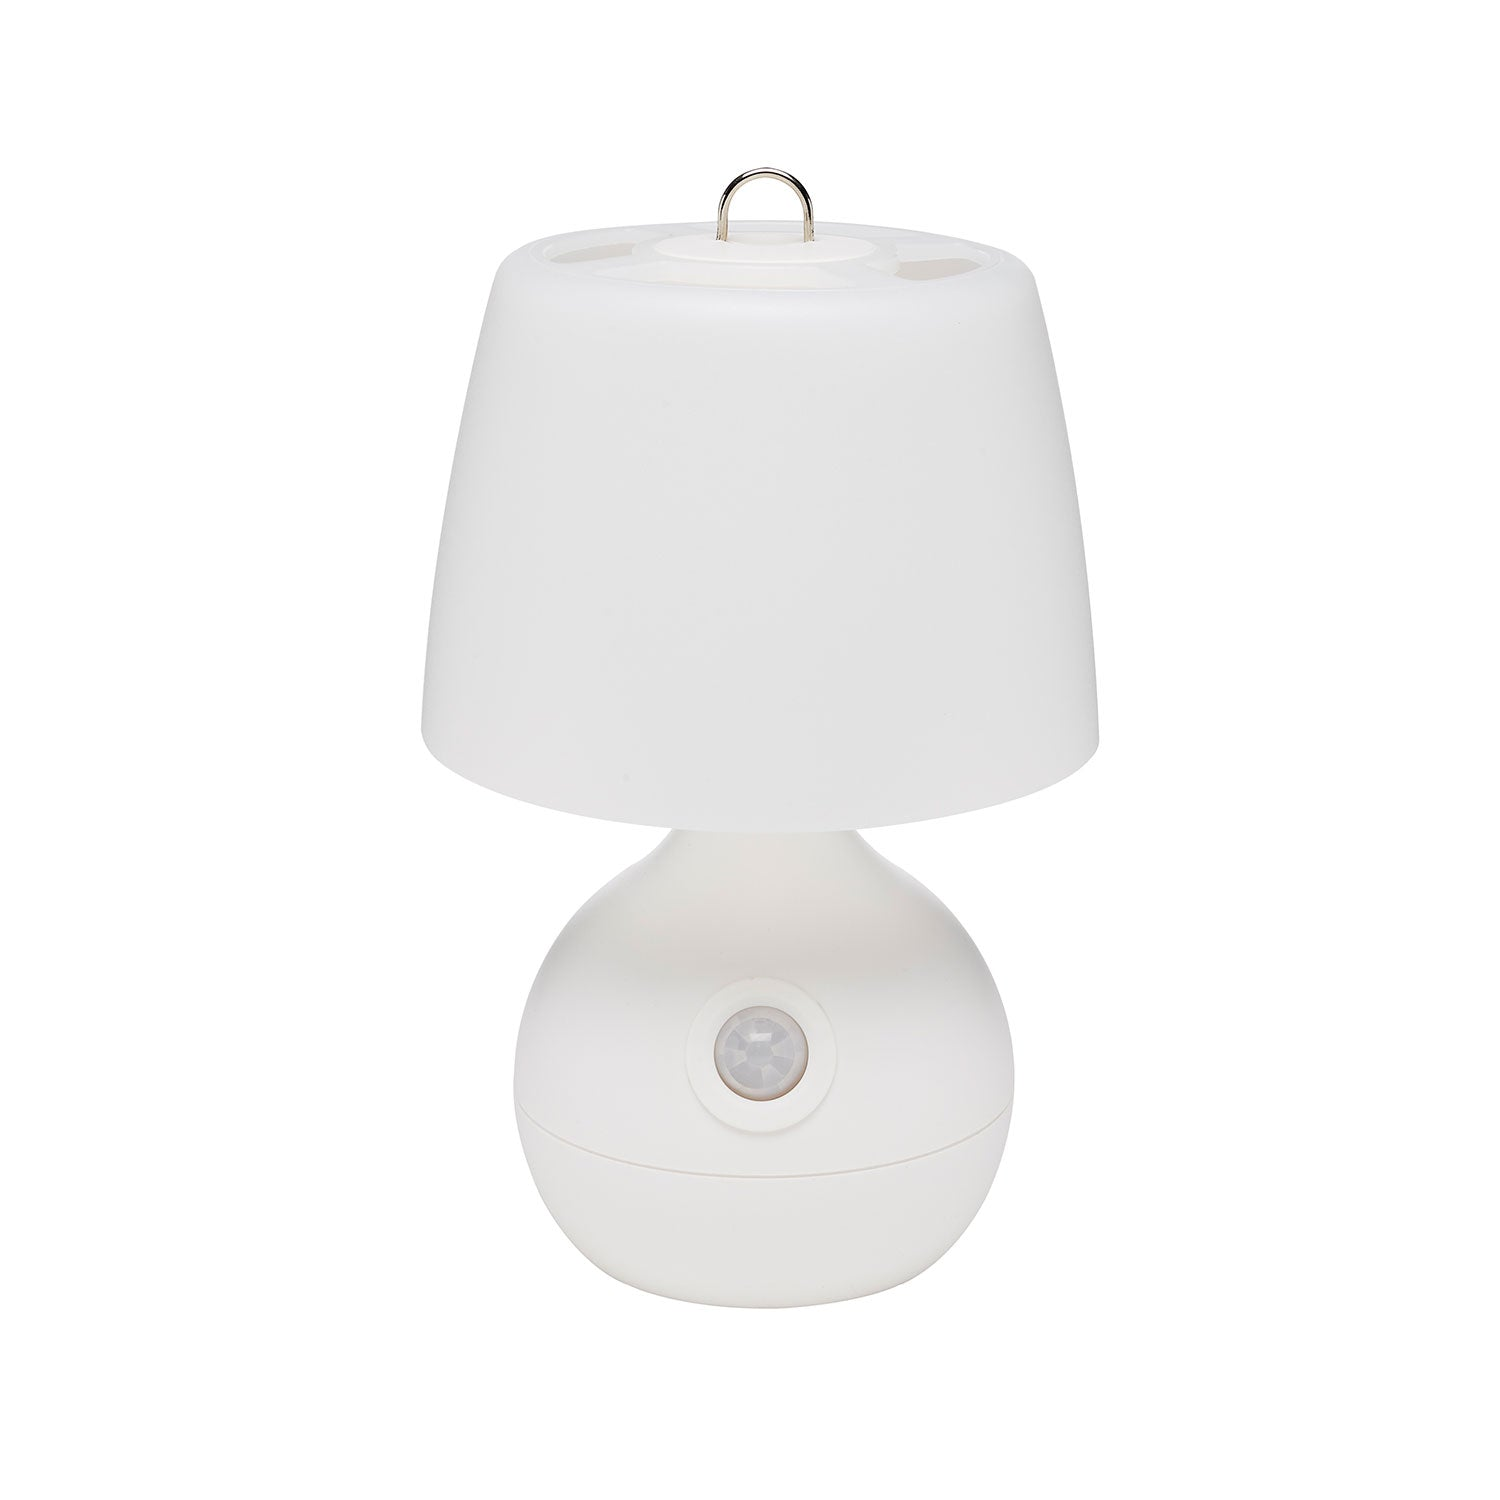 Motion-Activated Low-Light LED Light for Baby Nursery - front view, white